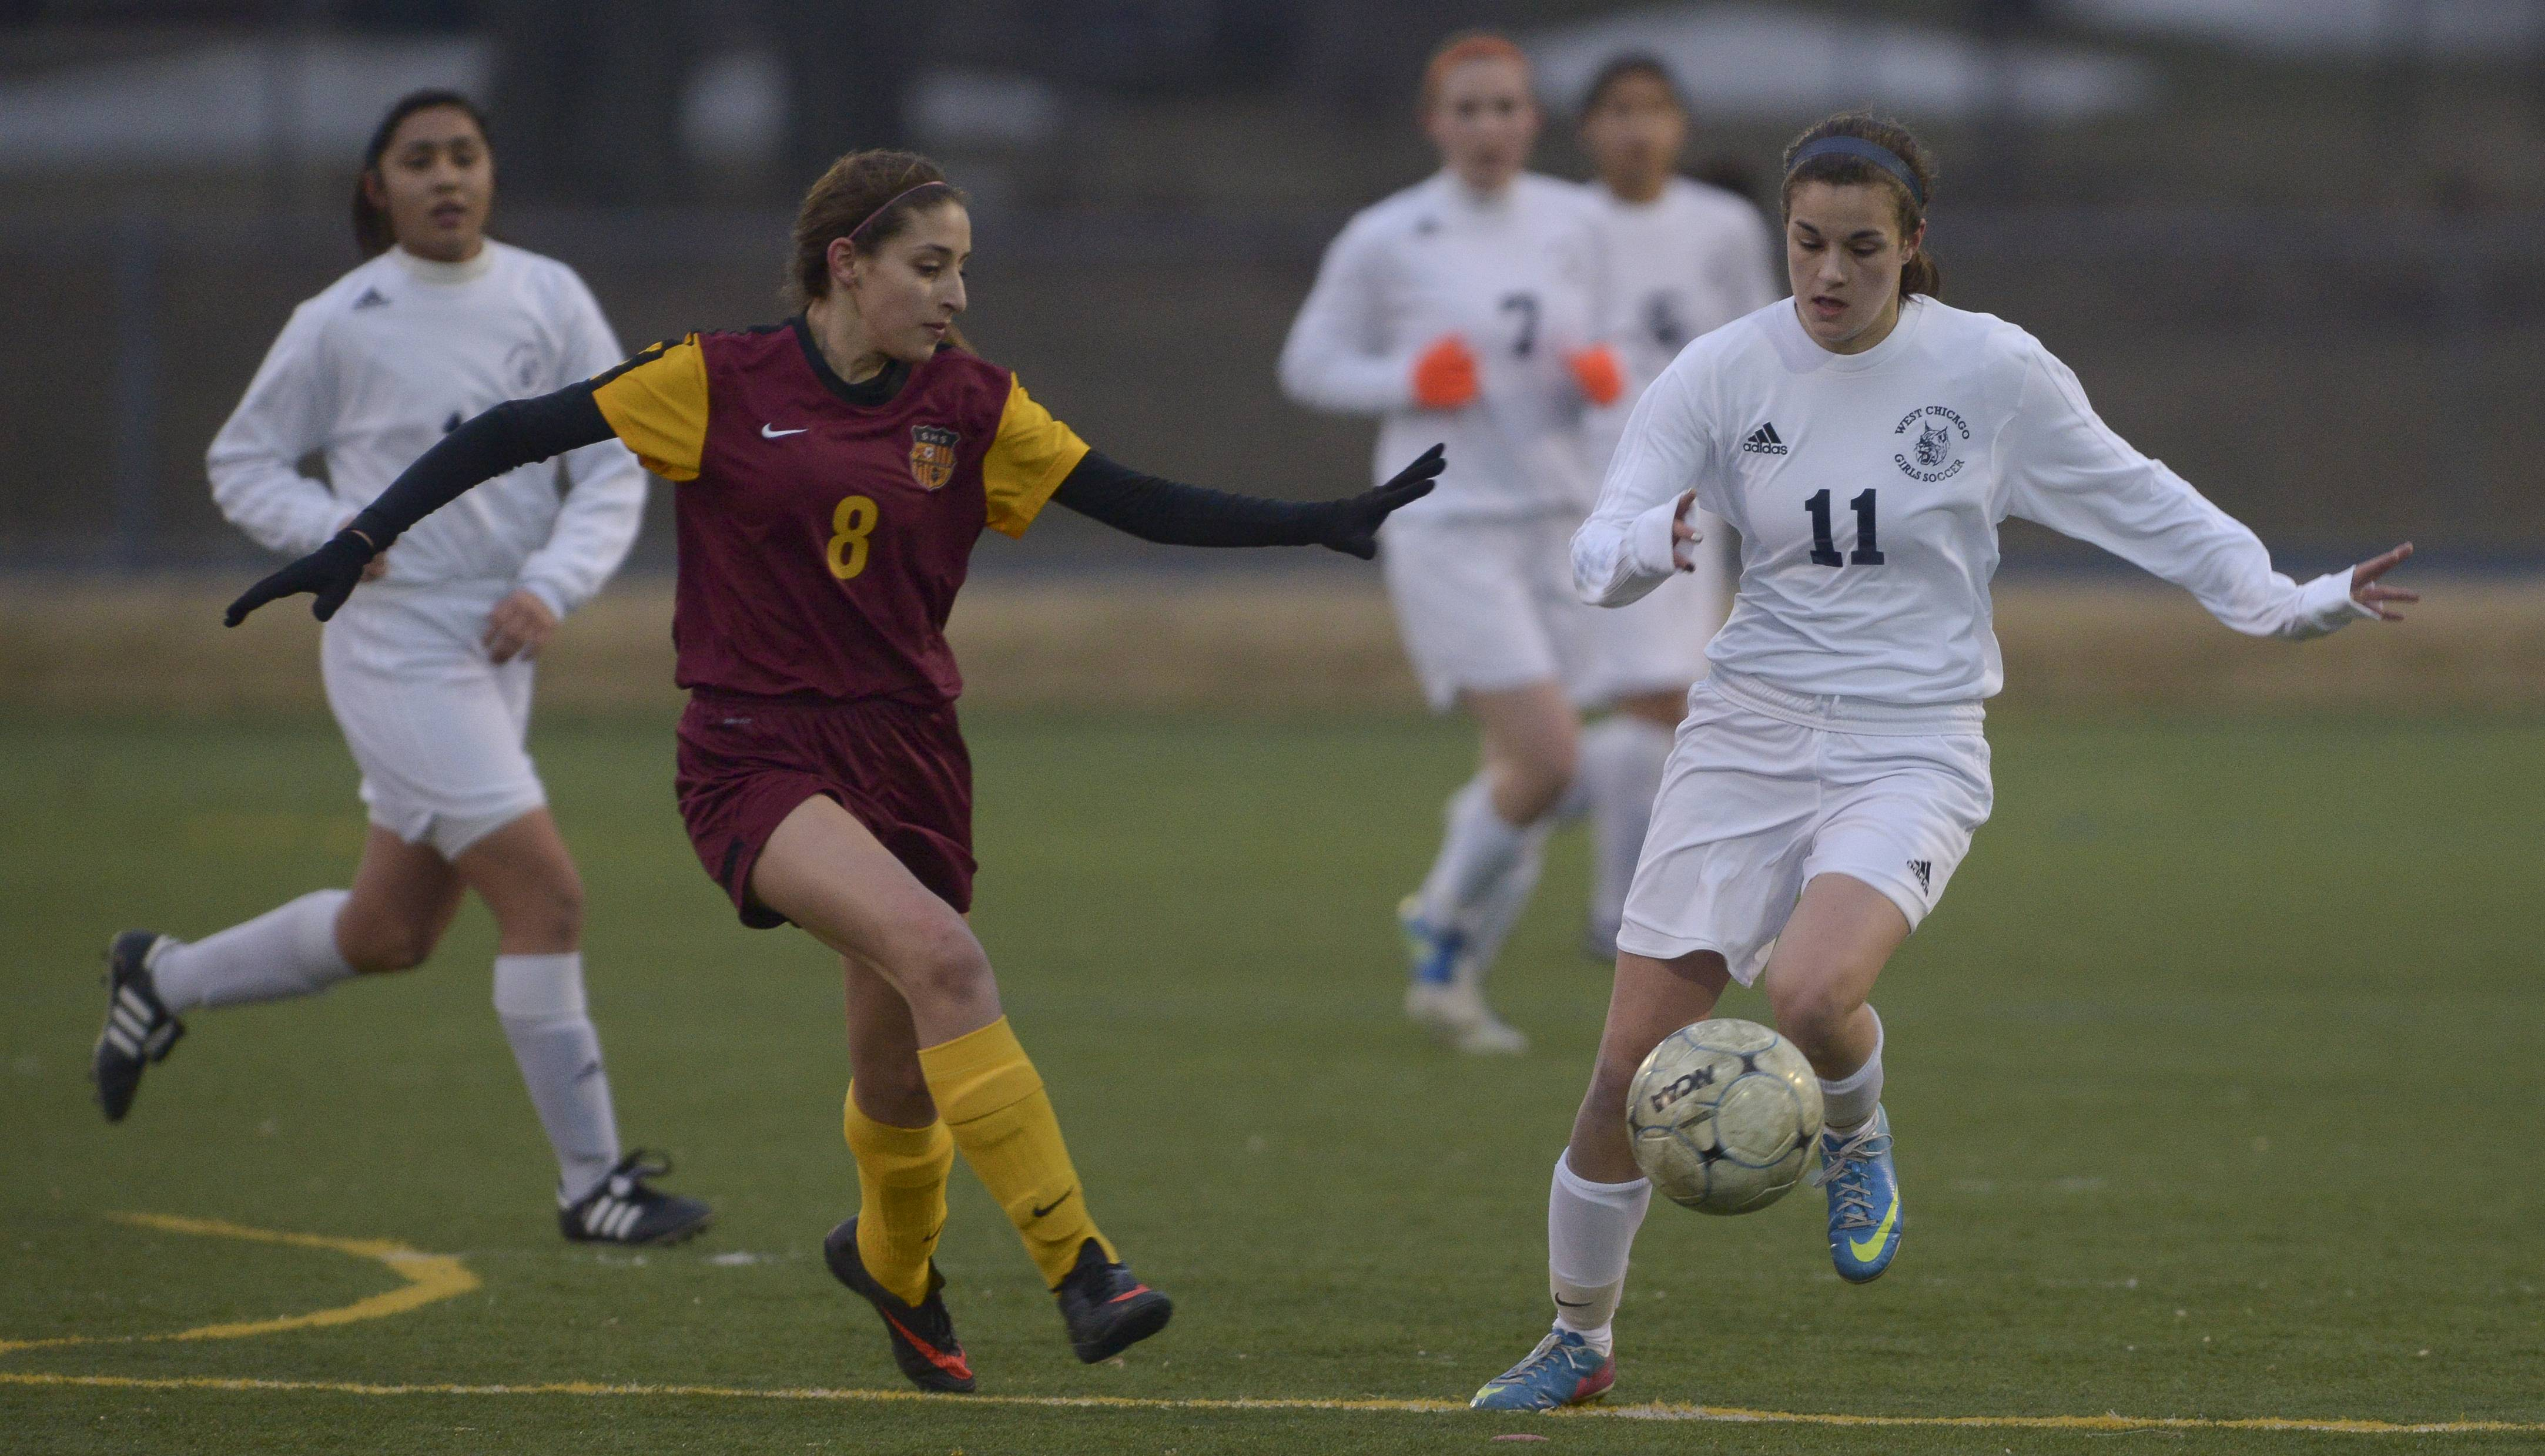 Schaumburg's Julia Morales and West Chicago's Katie Reitz work for control of the ball during varsity girls soccer in West Chicago.